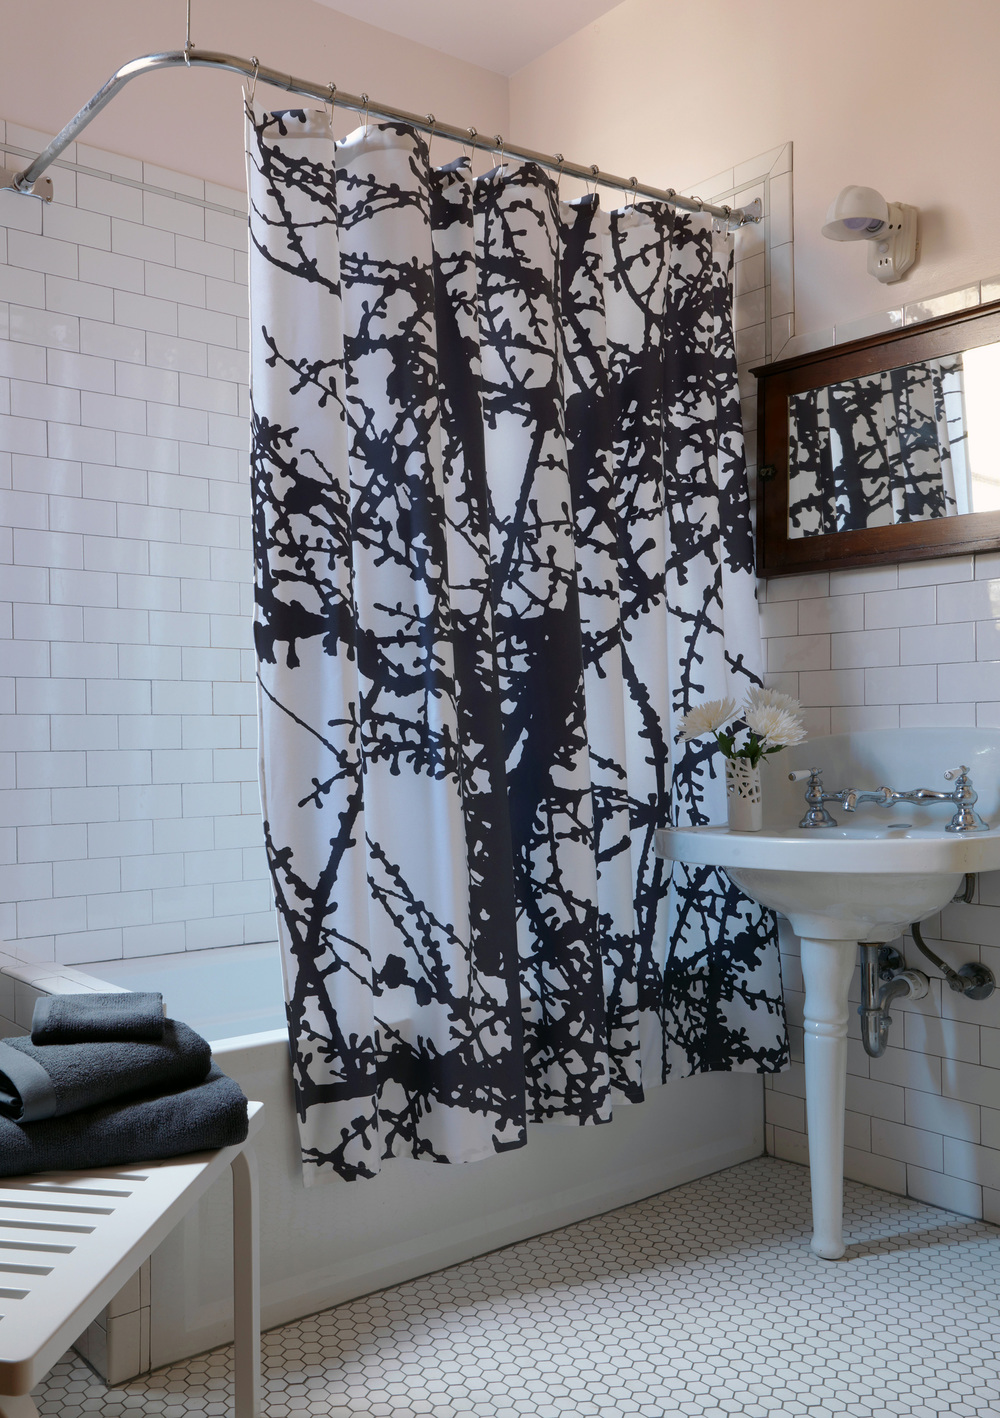 shower-curtain-larchresz.jpg